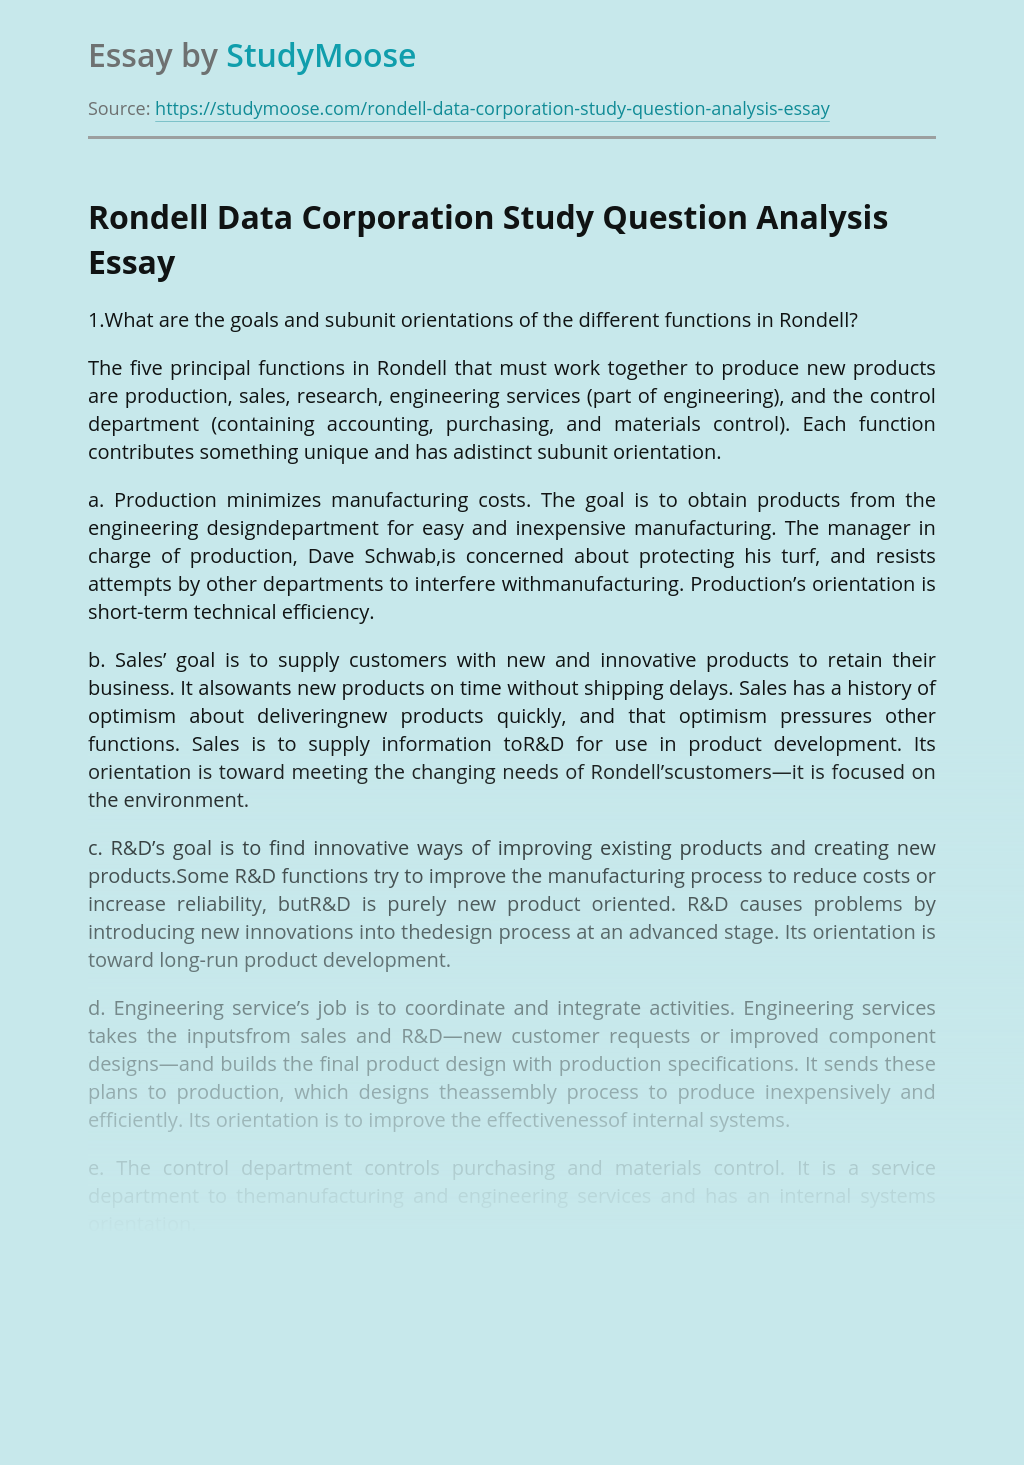 Rondell Data Corporation Study Question Analysis